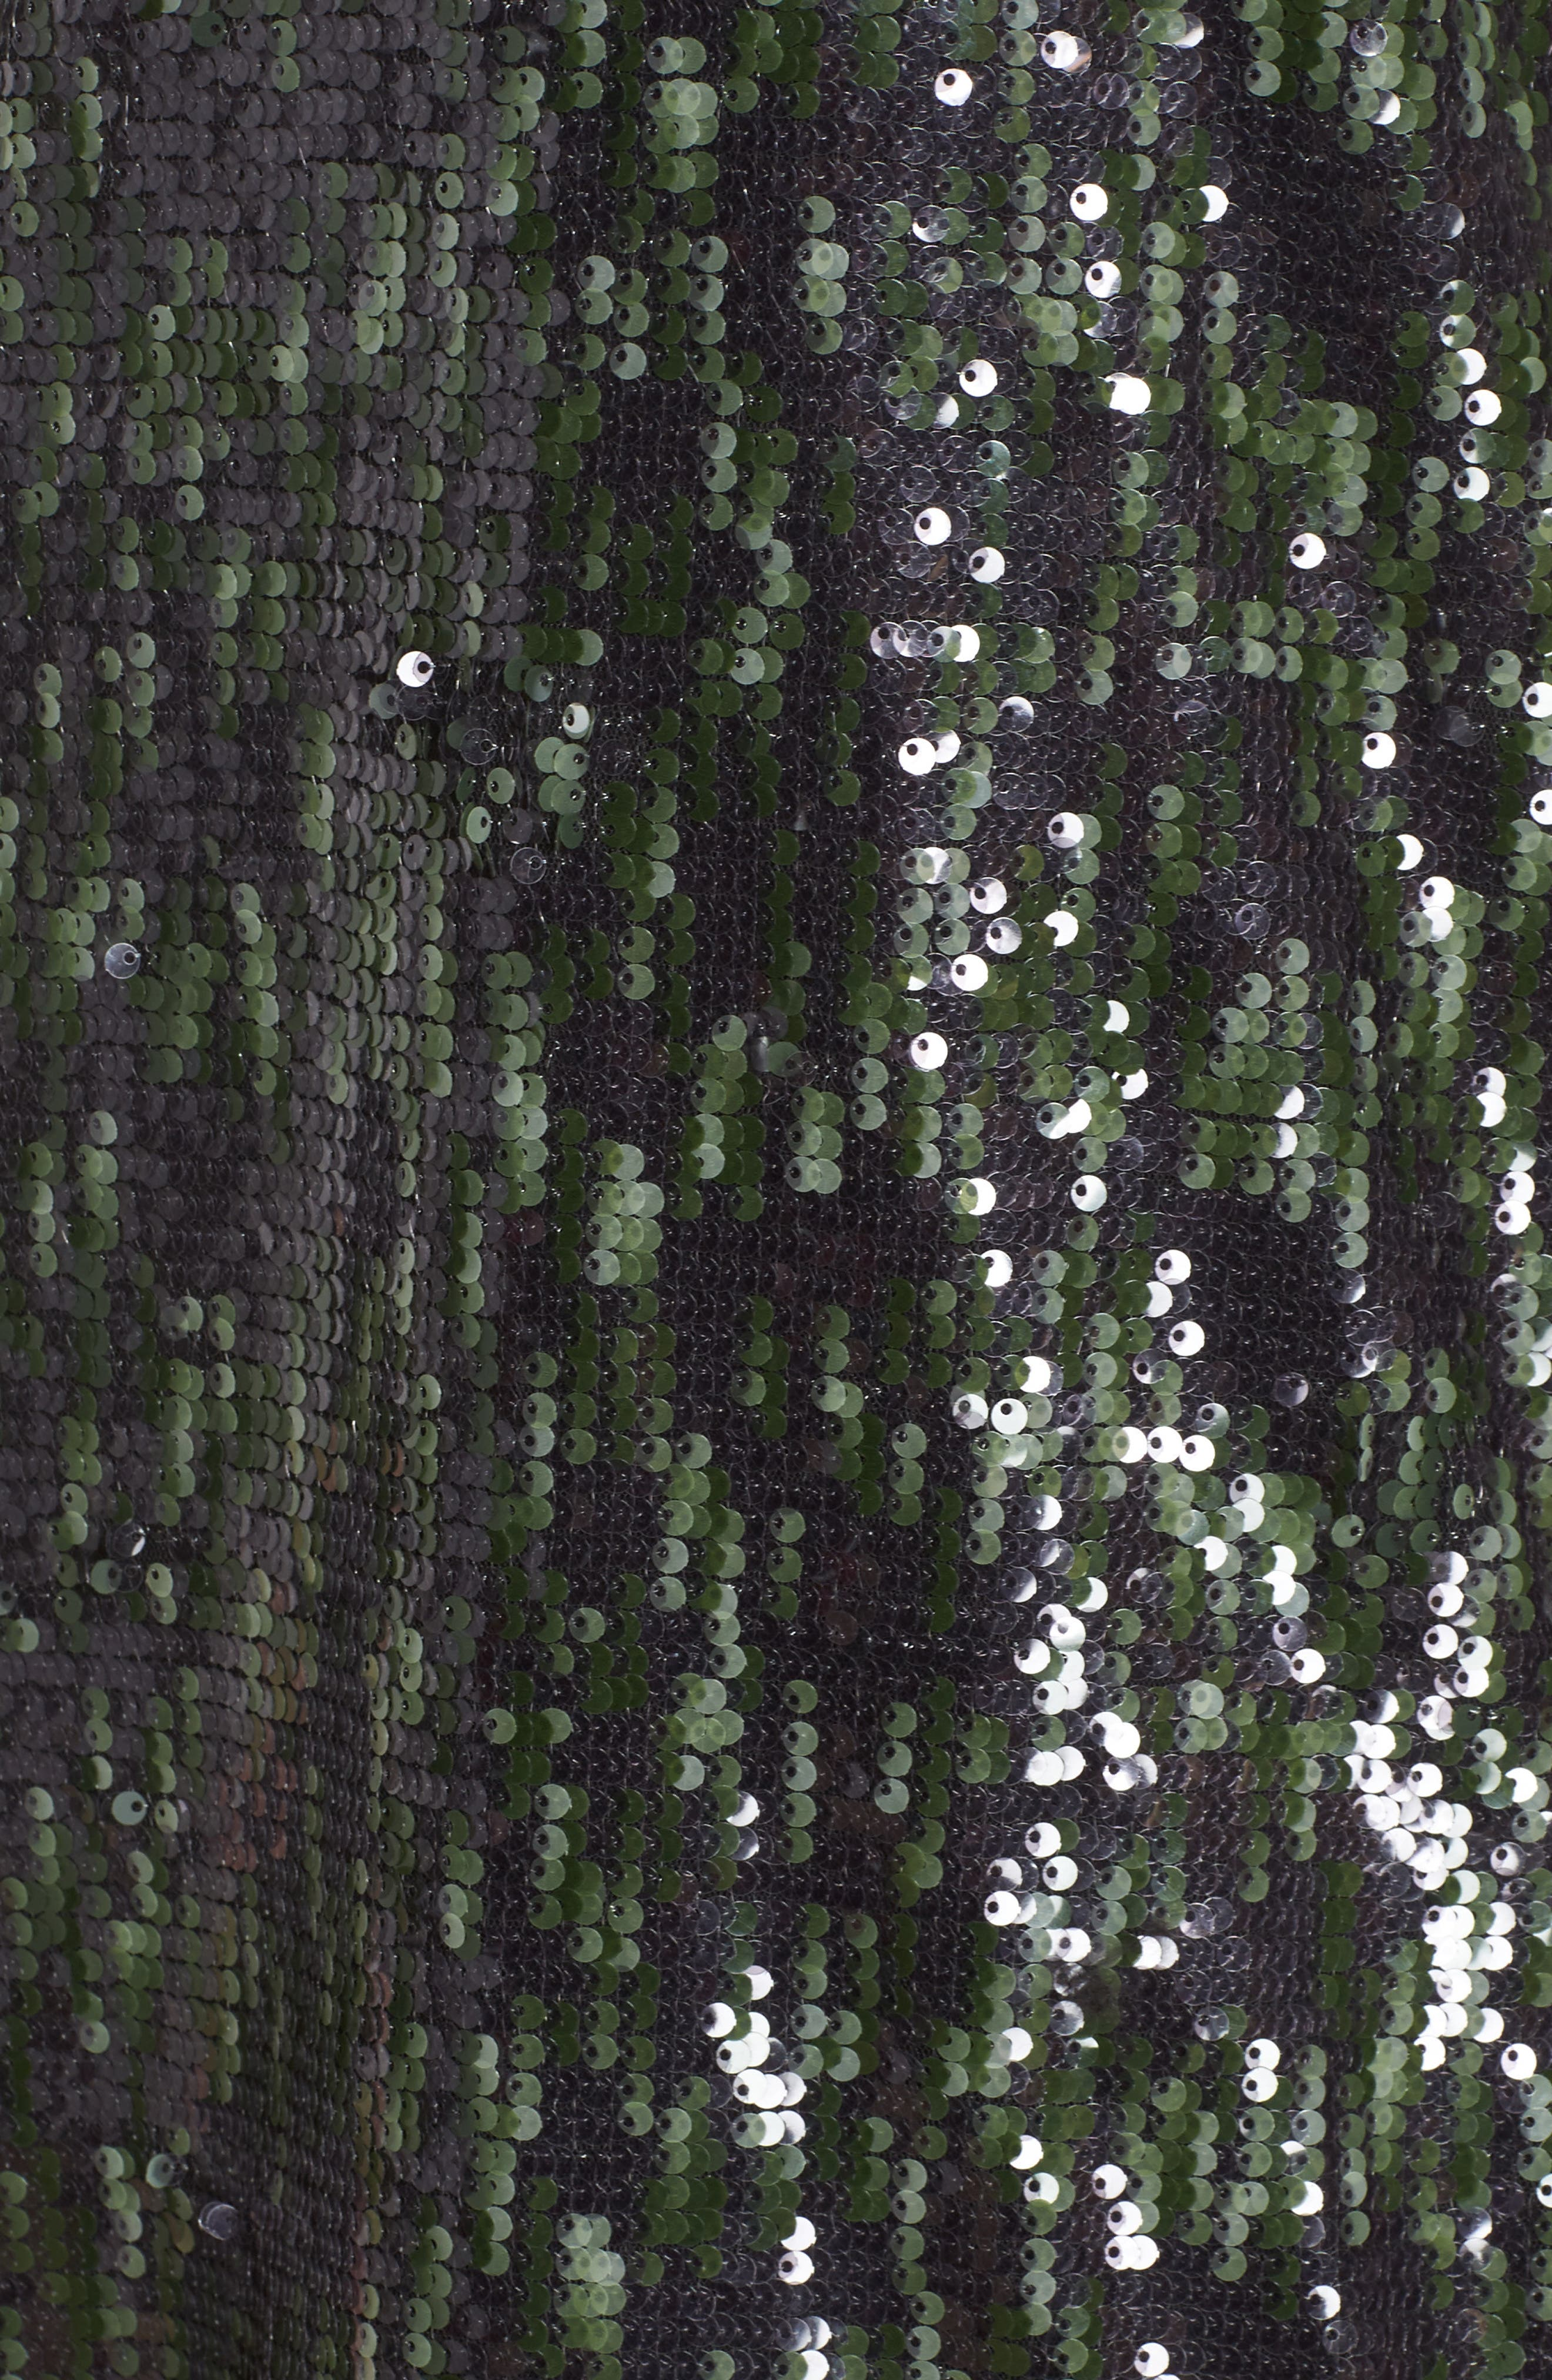 Camo Sequin Dress,                             Alternate thumbnail 5, color,                             Black/ Green